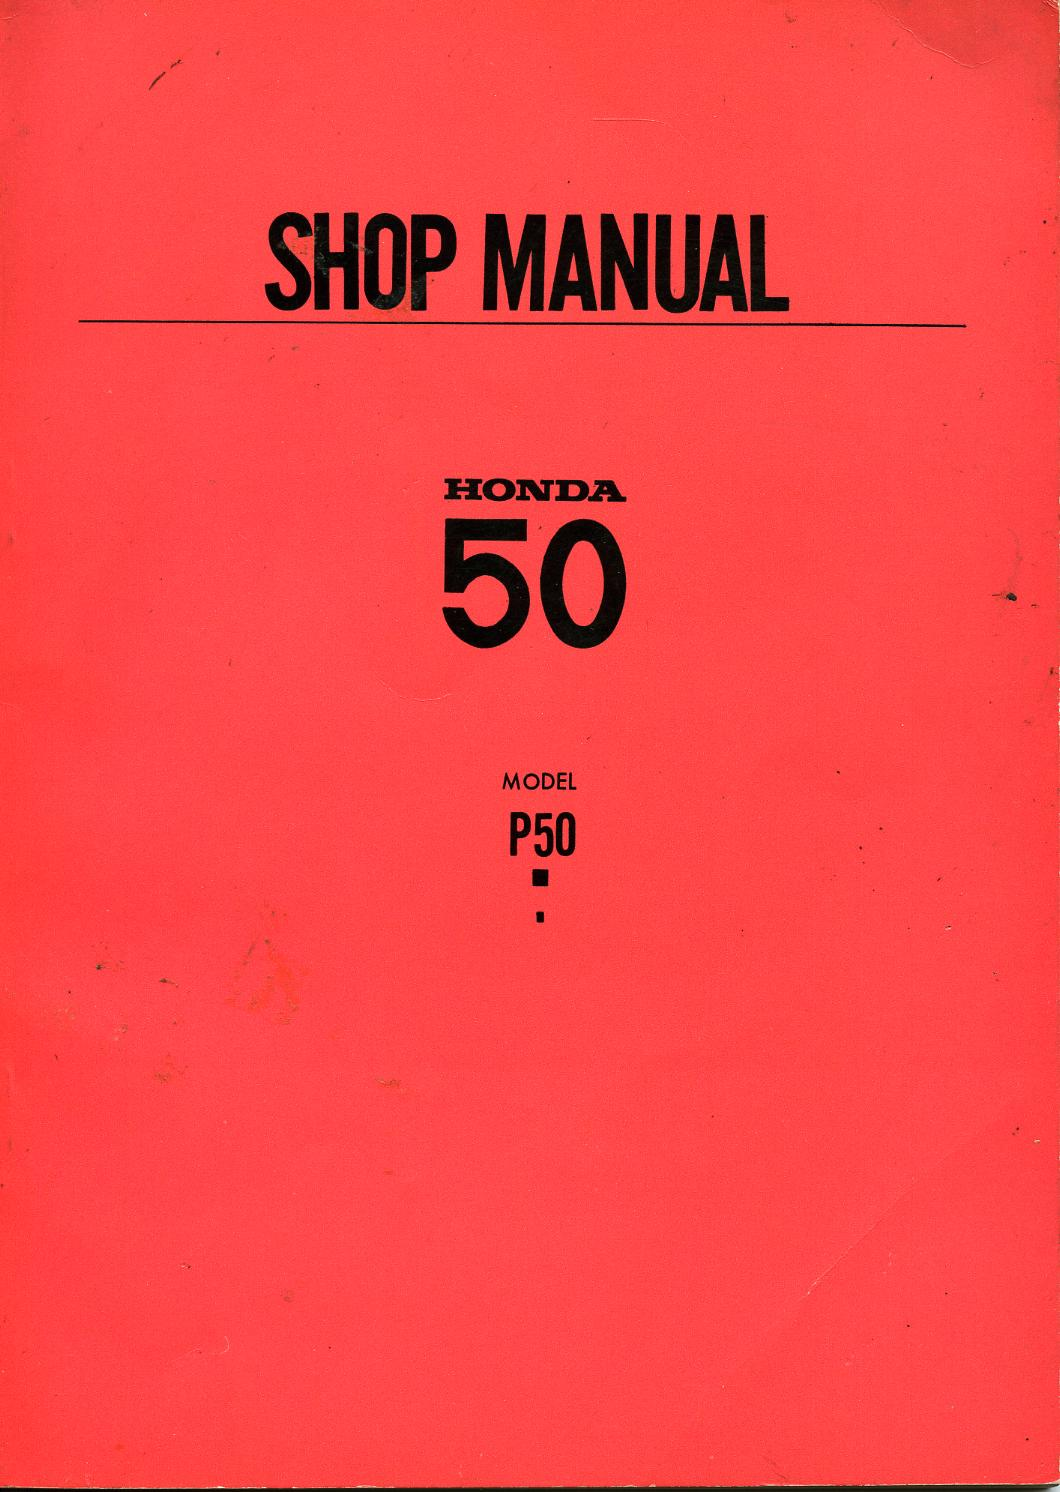 Honda P50 Shop Manual.jpg